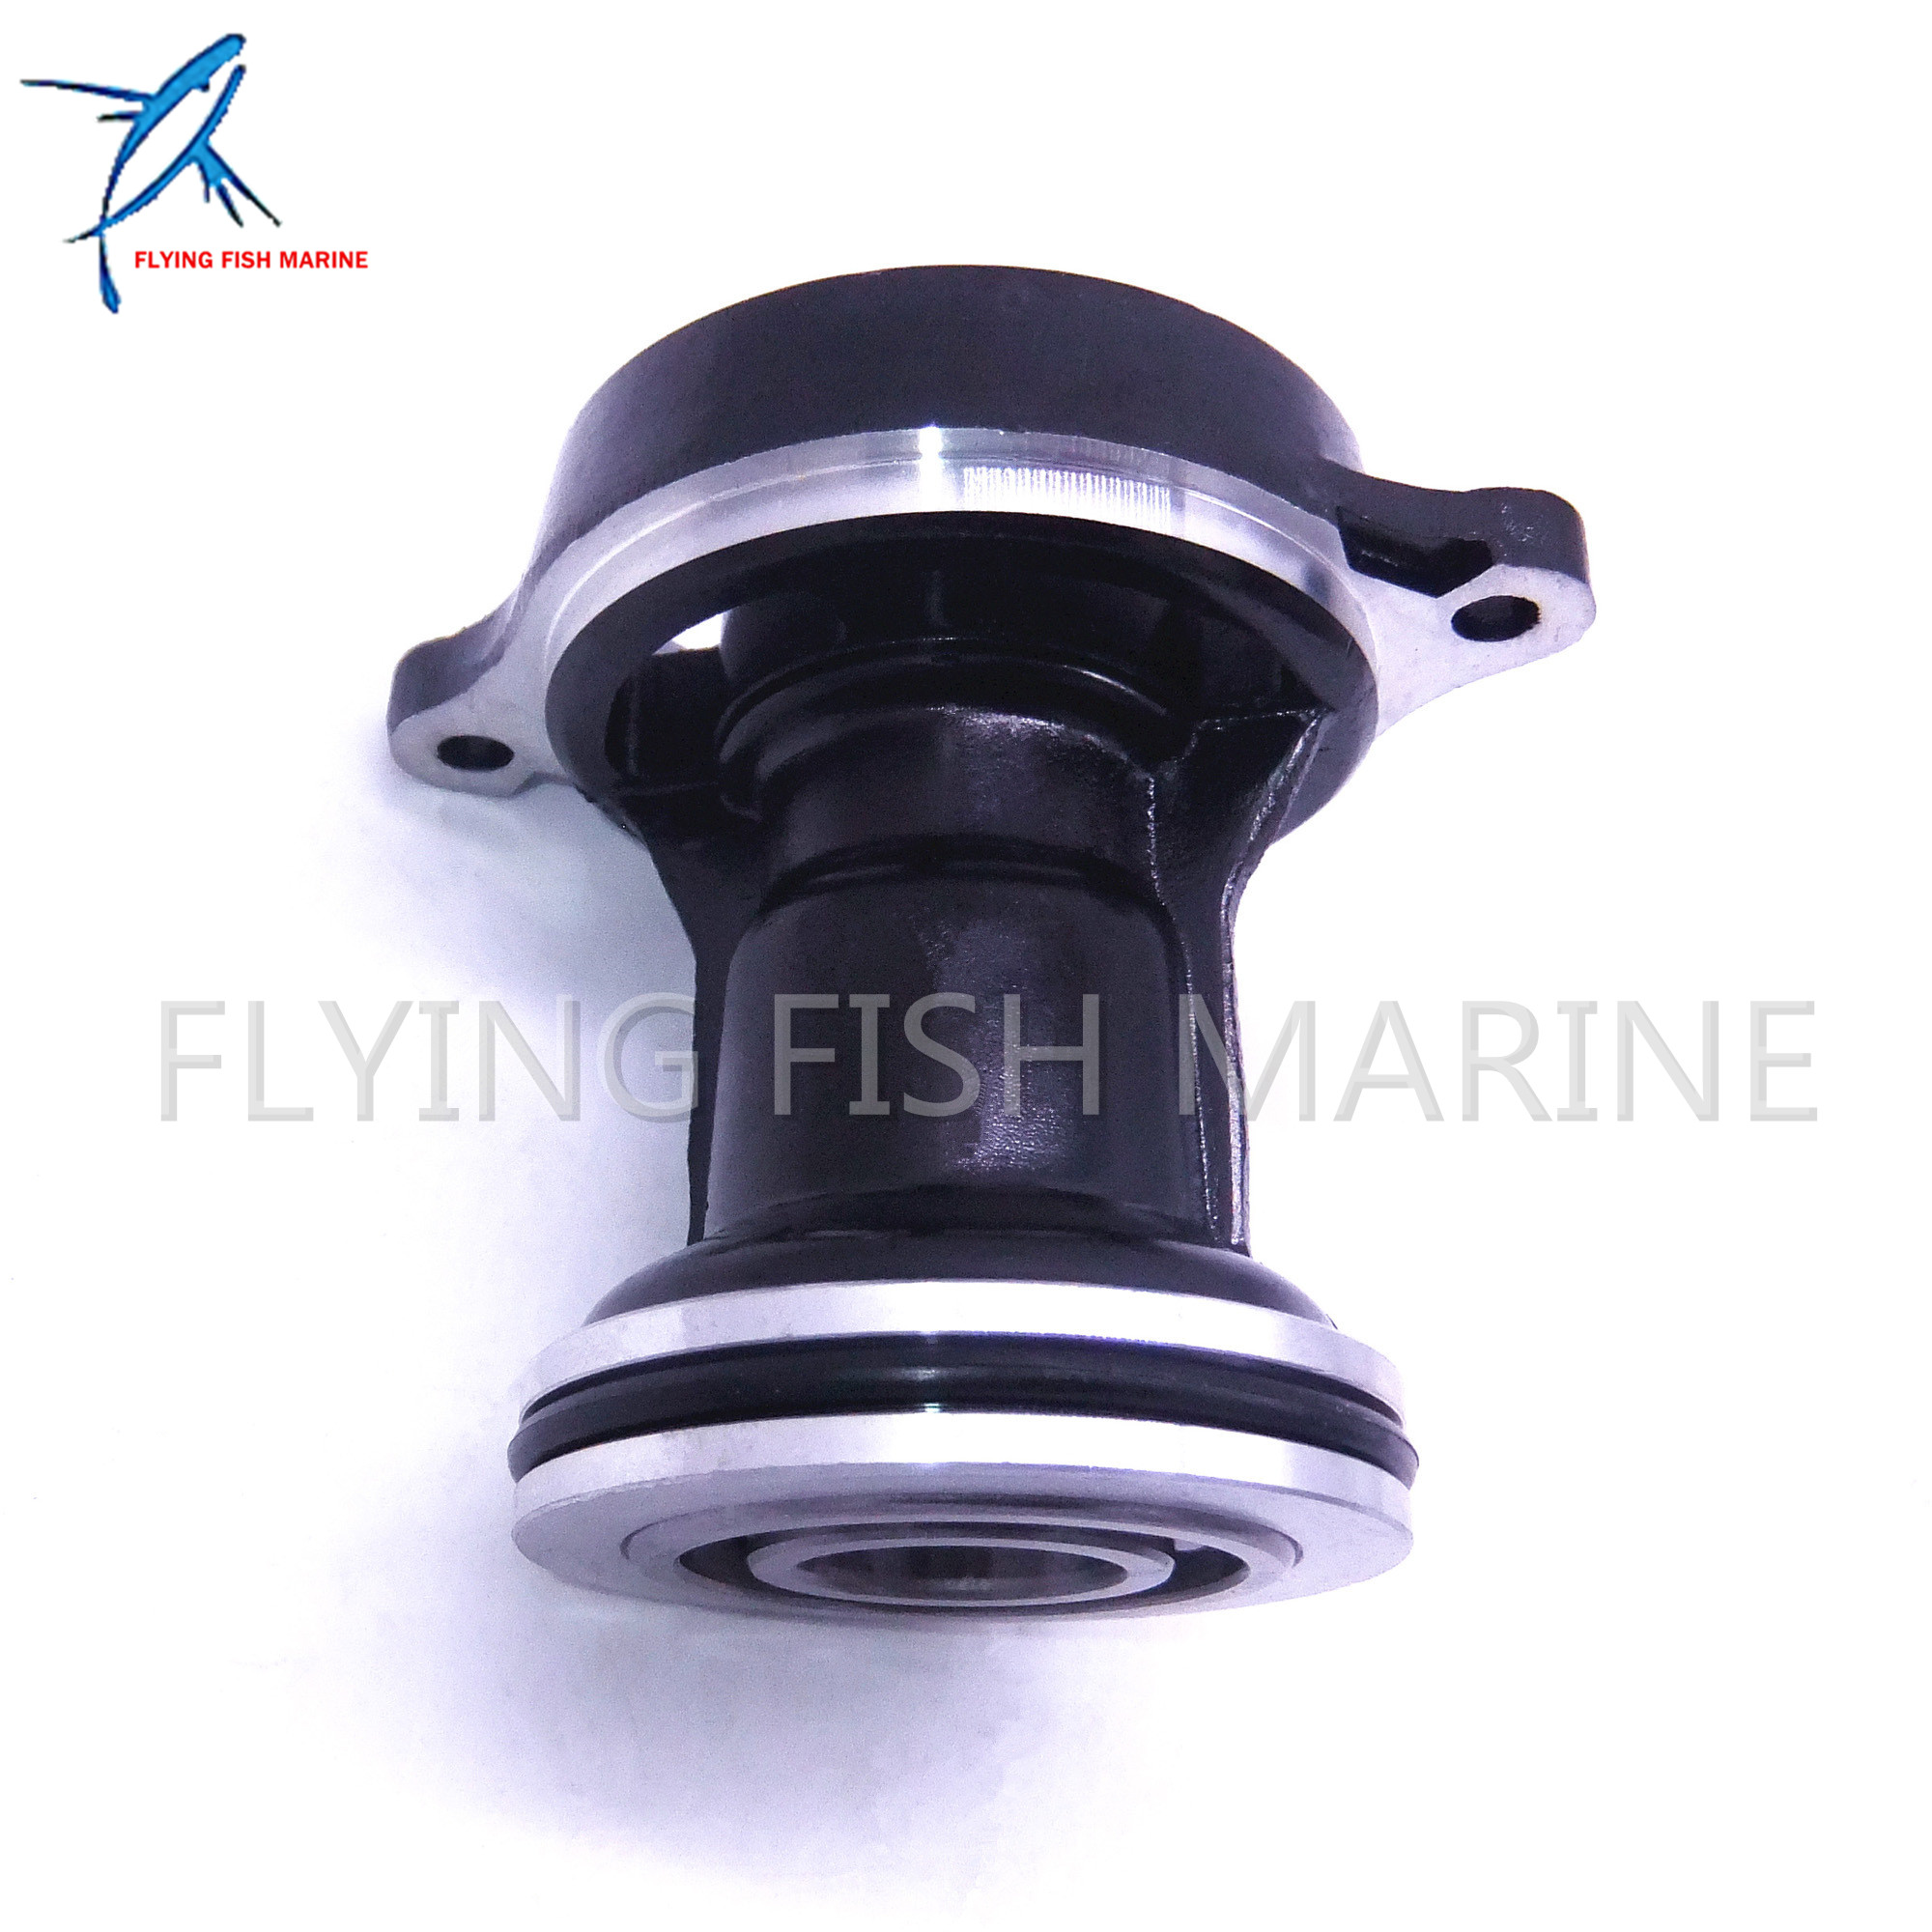 Outboard Motor F8 04040000 Lower Casing Cap Cover Assy with Bearing for Parsun HDX SEA PRO